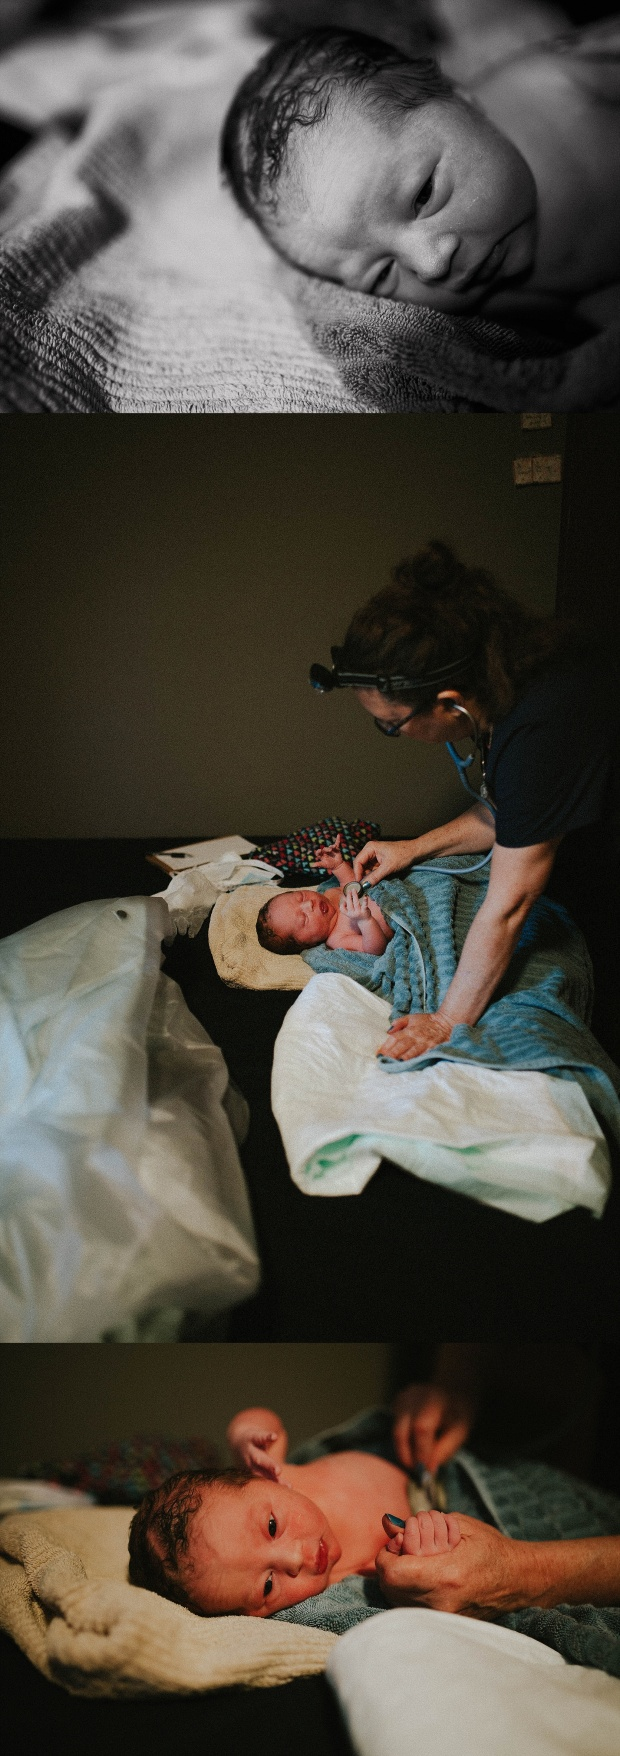 CHICAGO AND WEST SUBURBS BIRTH PHOTOGRAPHER (55)